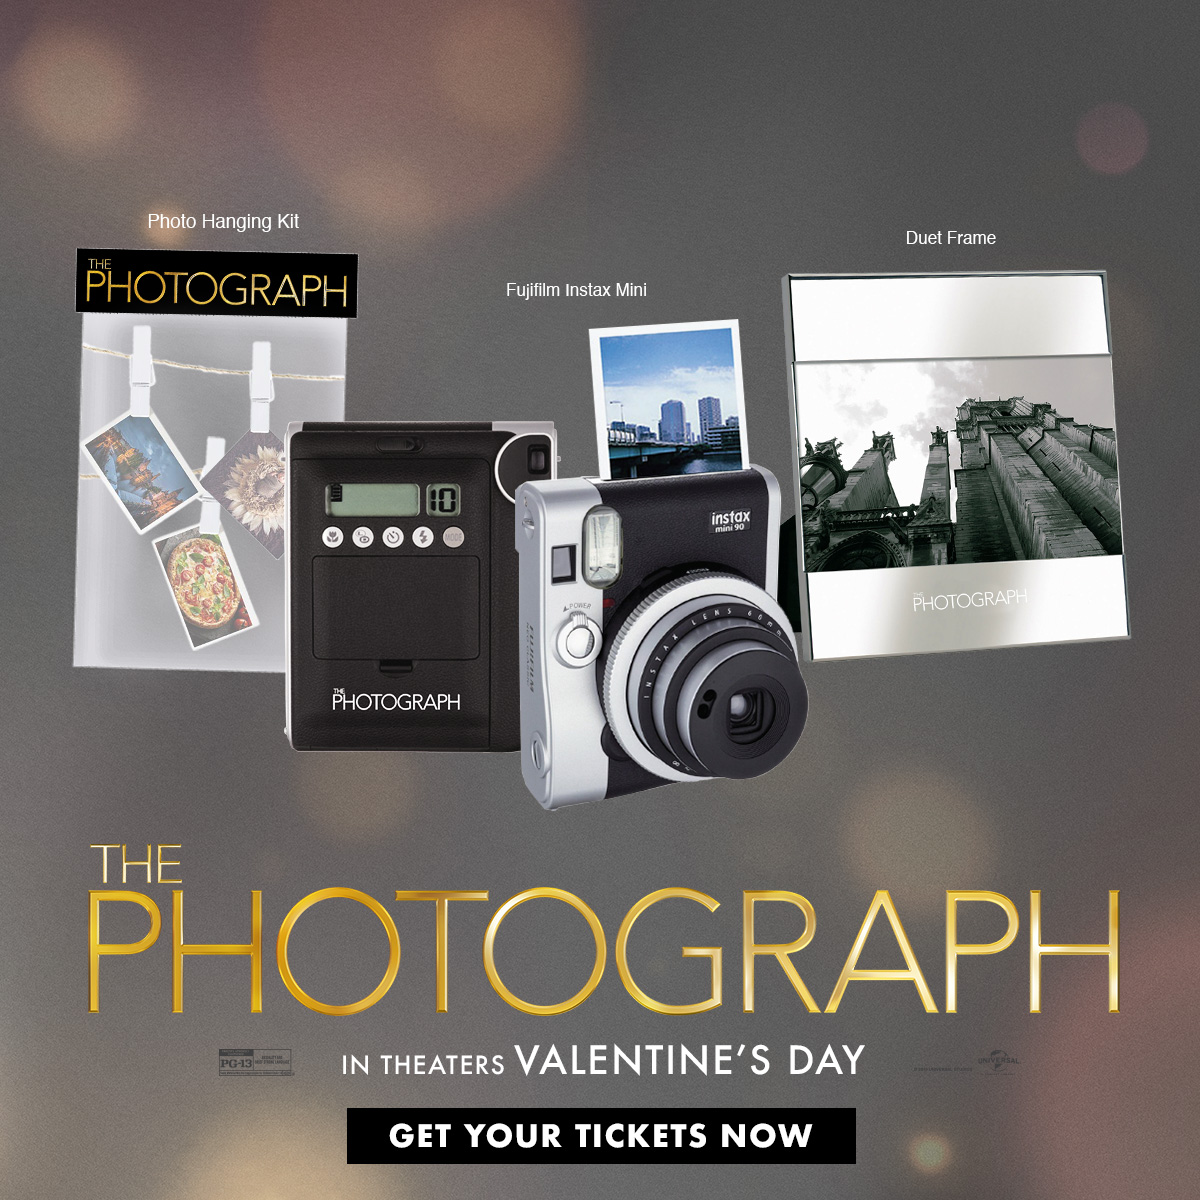 Follow us on Twitter, RT this post AND Tag someone who is not following us to be entered to win a @photographmovie prize pack courtesy of @universalpics.  🎟: https://bit.ly/2OJfkl0 #Contest Rules: http://bit.ly/2EsoaAL #MakeItICONIC #thephotographmovie #mountainview